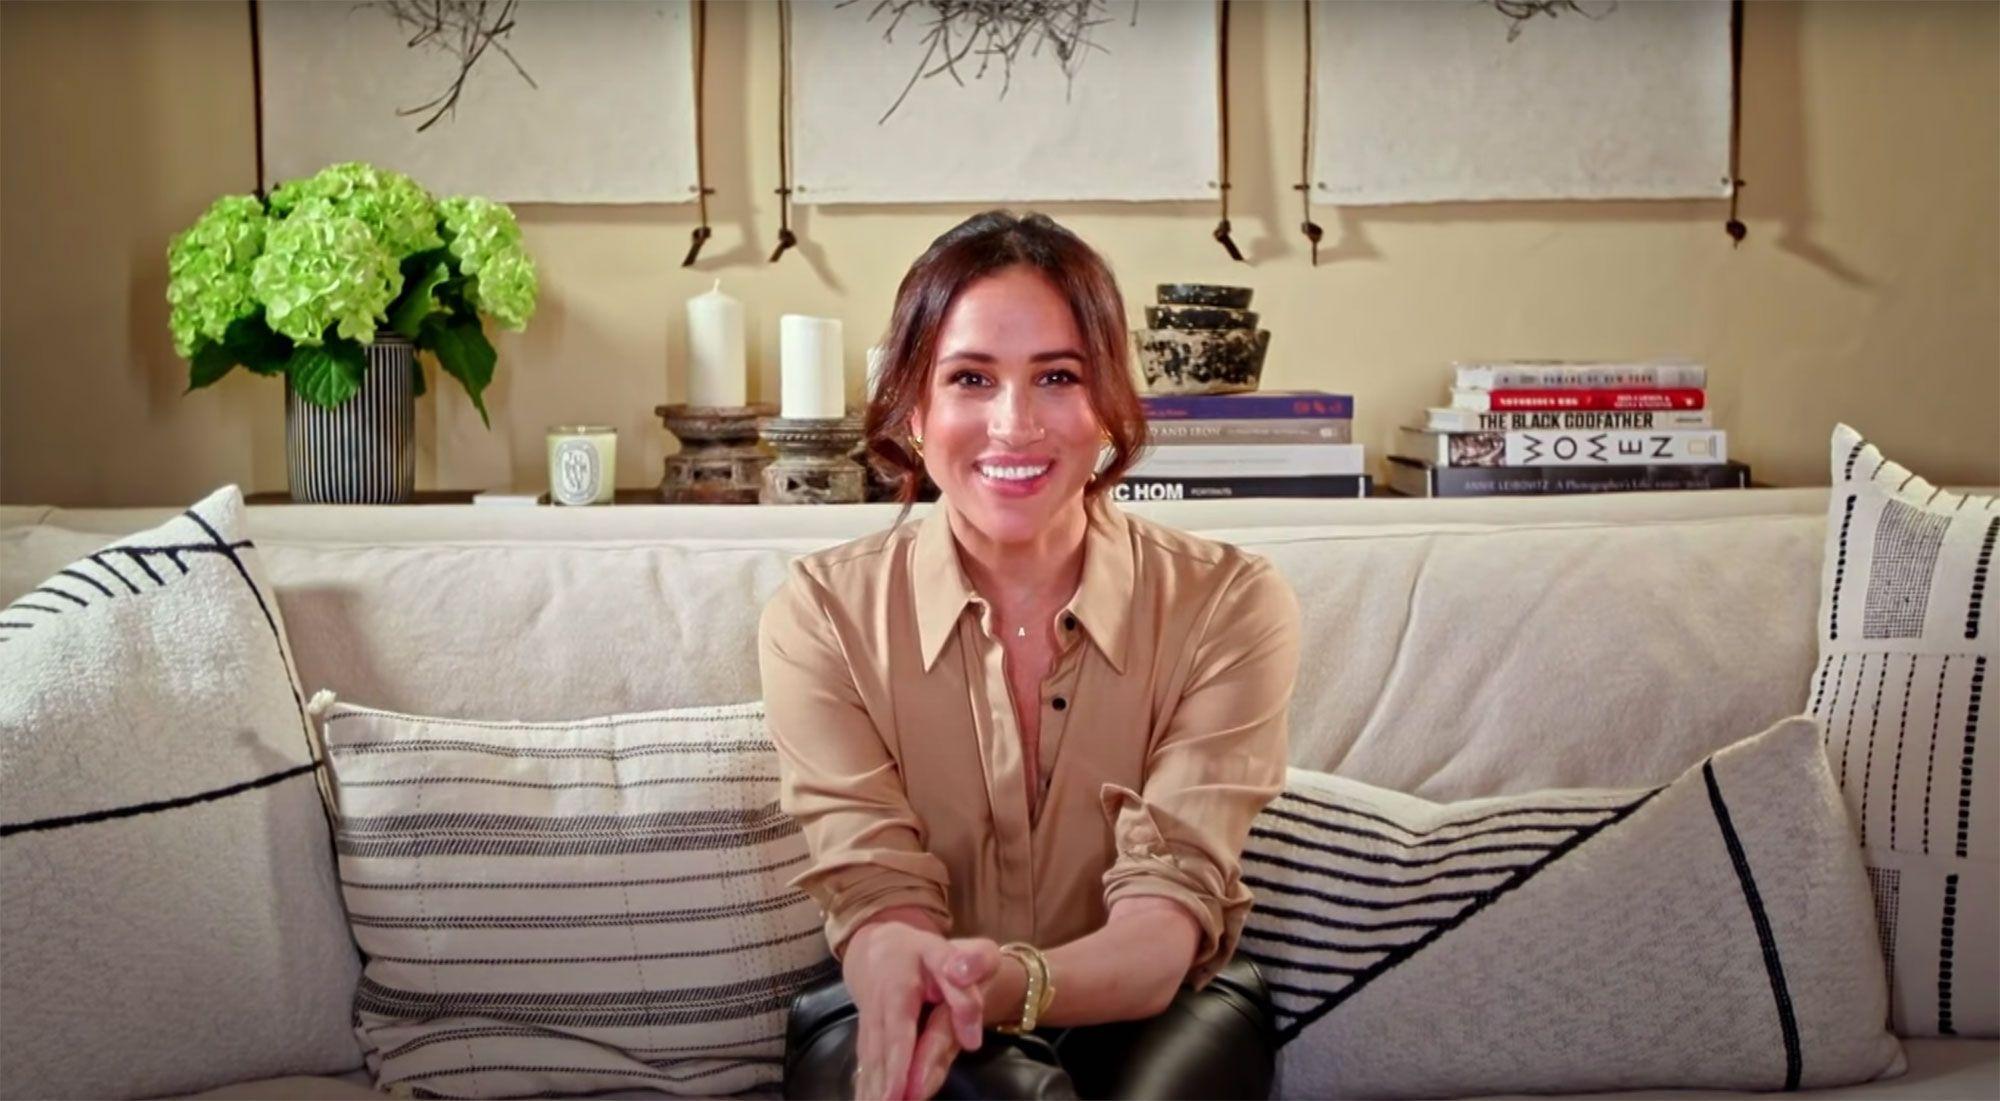 Meghan Markle Shows Off Her Living Room While Wishing America's Got Talent's Archie Williams Luck